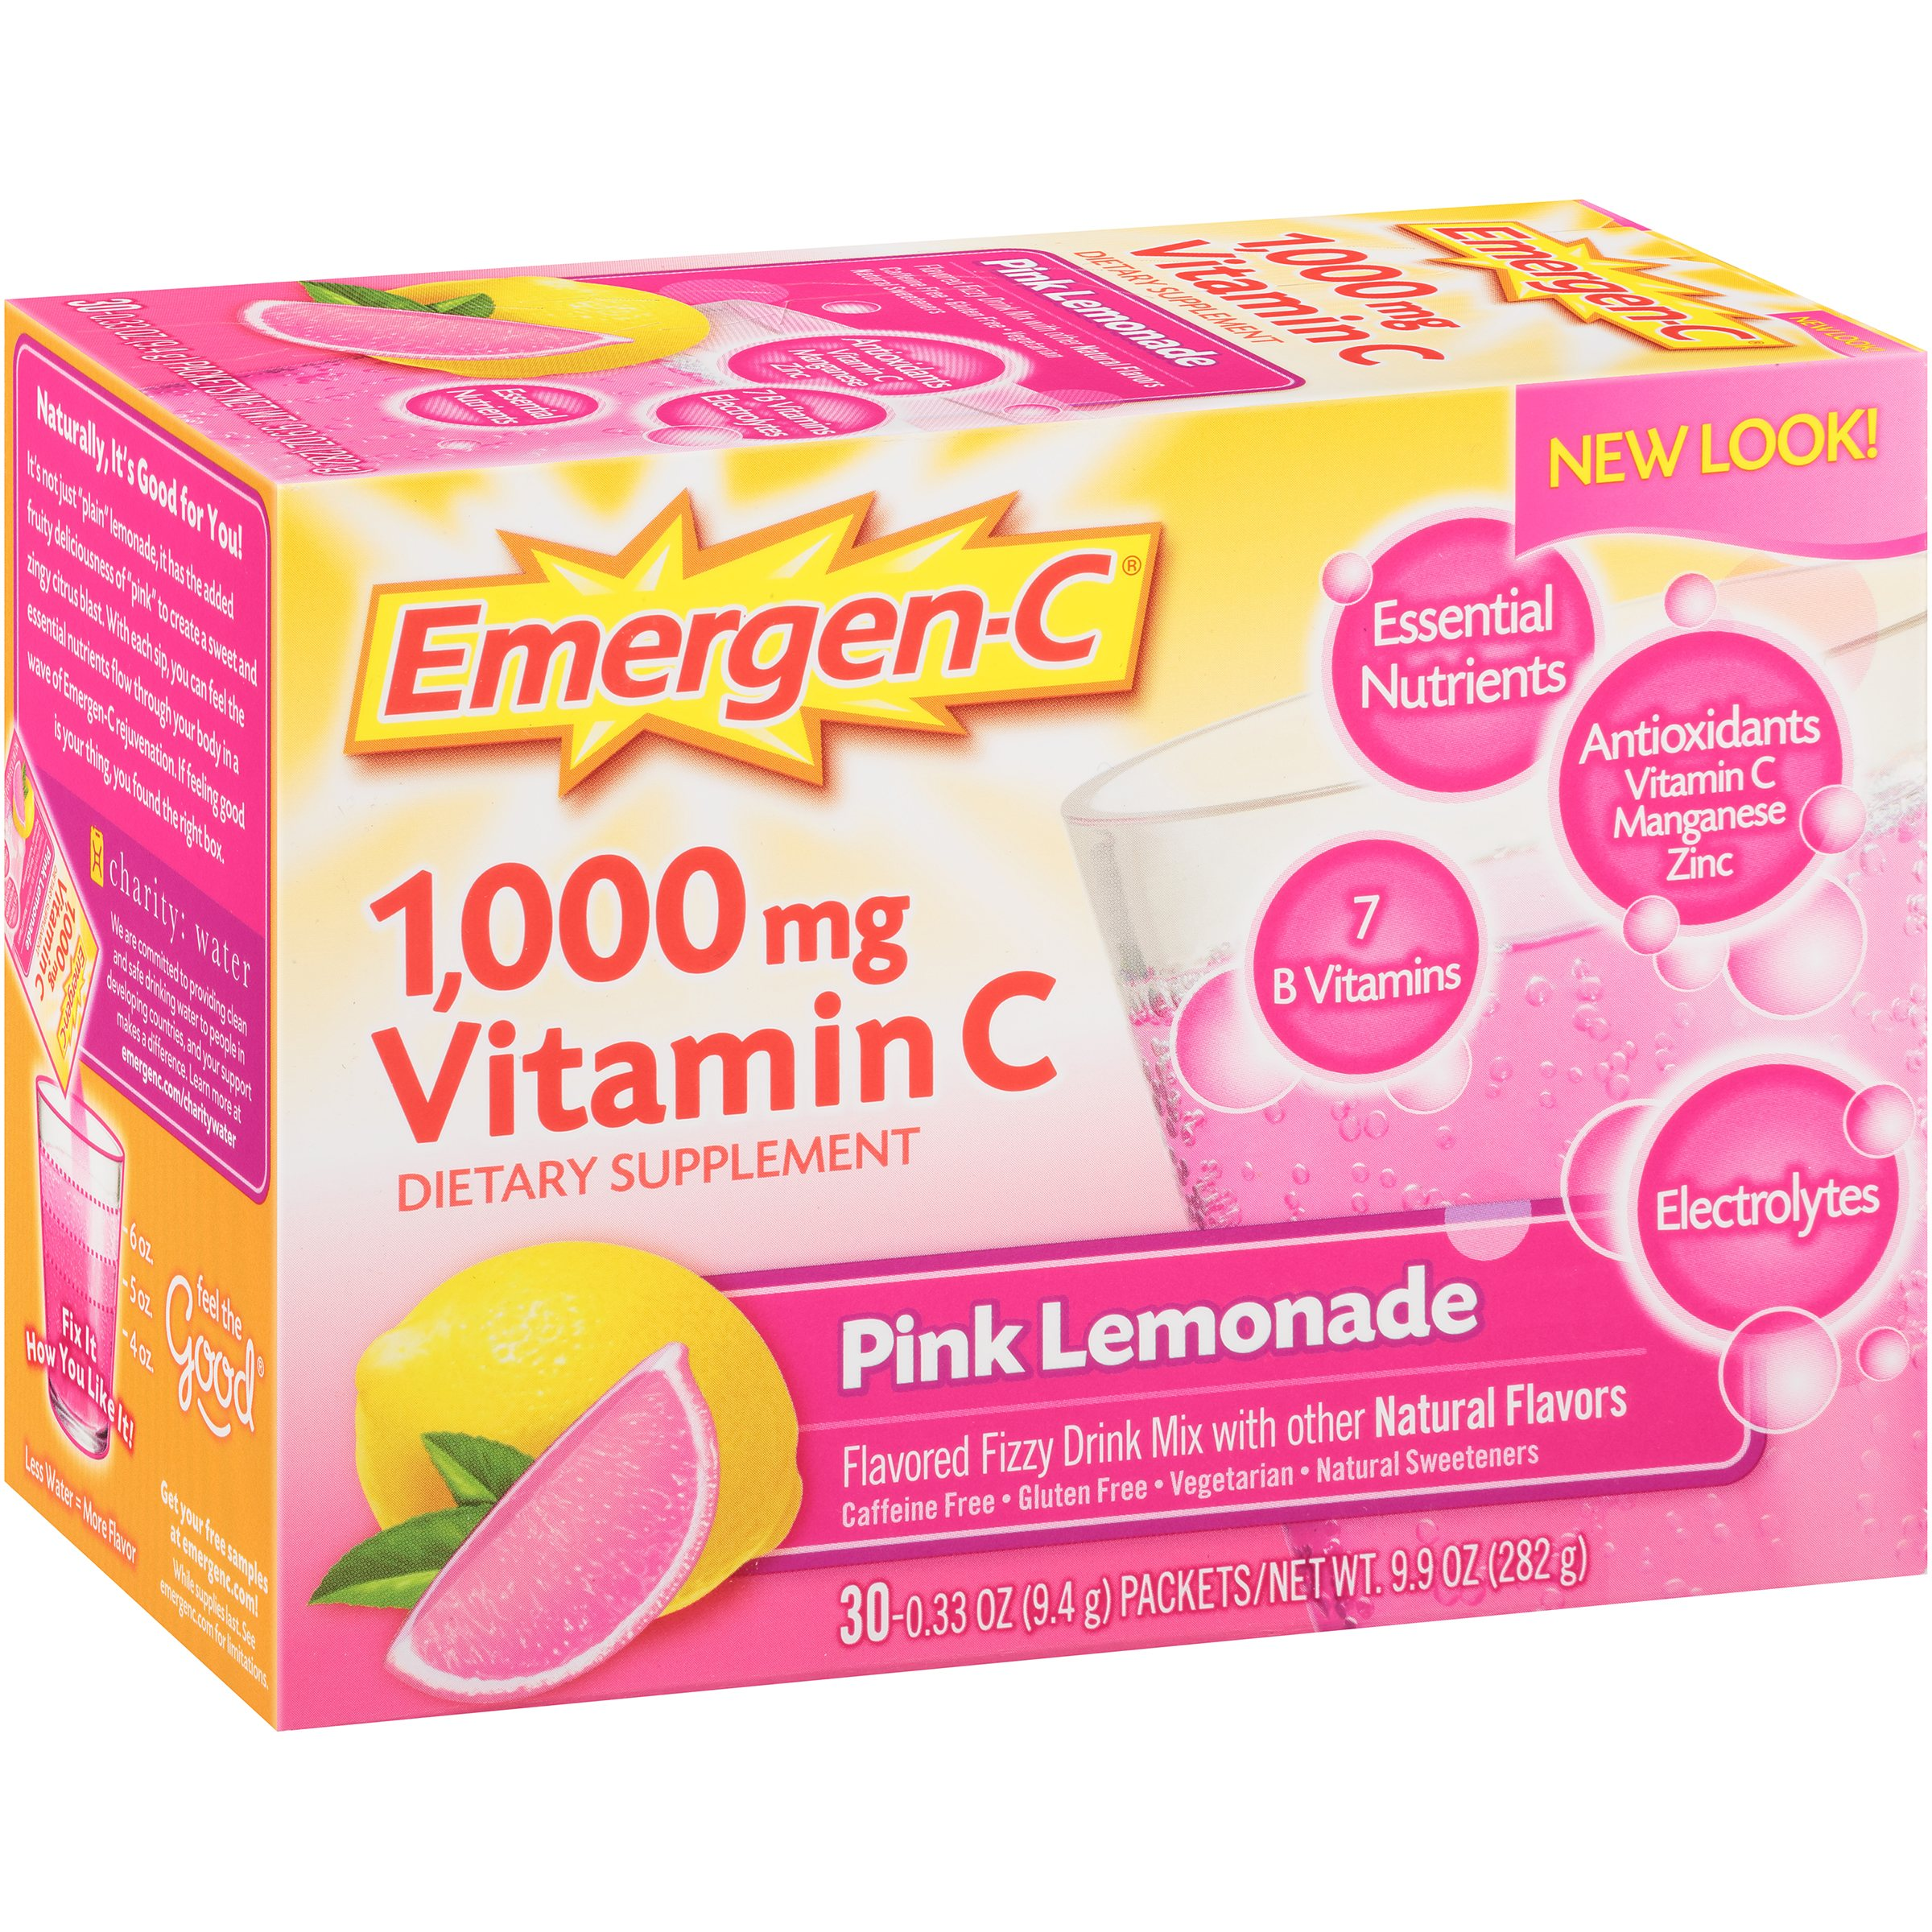 Emergen-C (30 Count, Pink Lemonade Flavor) Dietary Supplement Fizzy Drink Mix with 1000 mg Vitamin C, 0.33 Ounce Packets, Caffeine Free